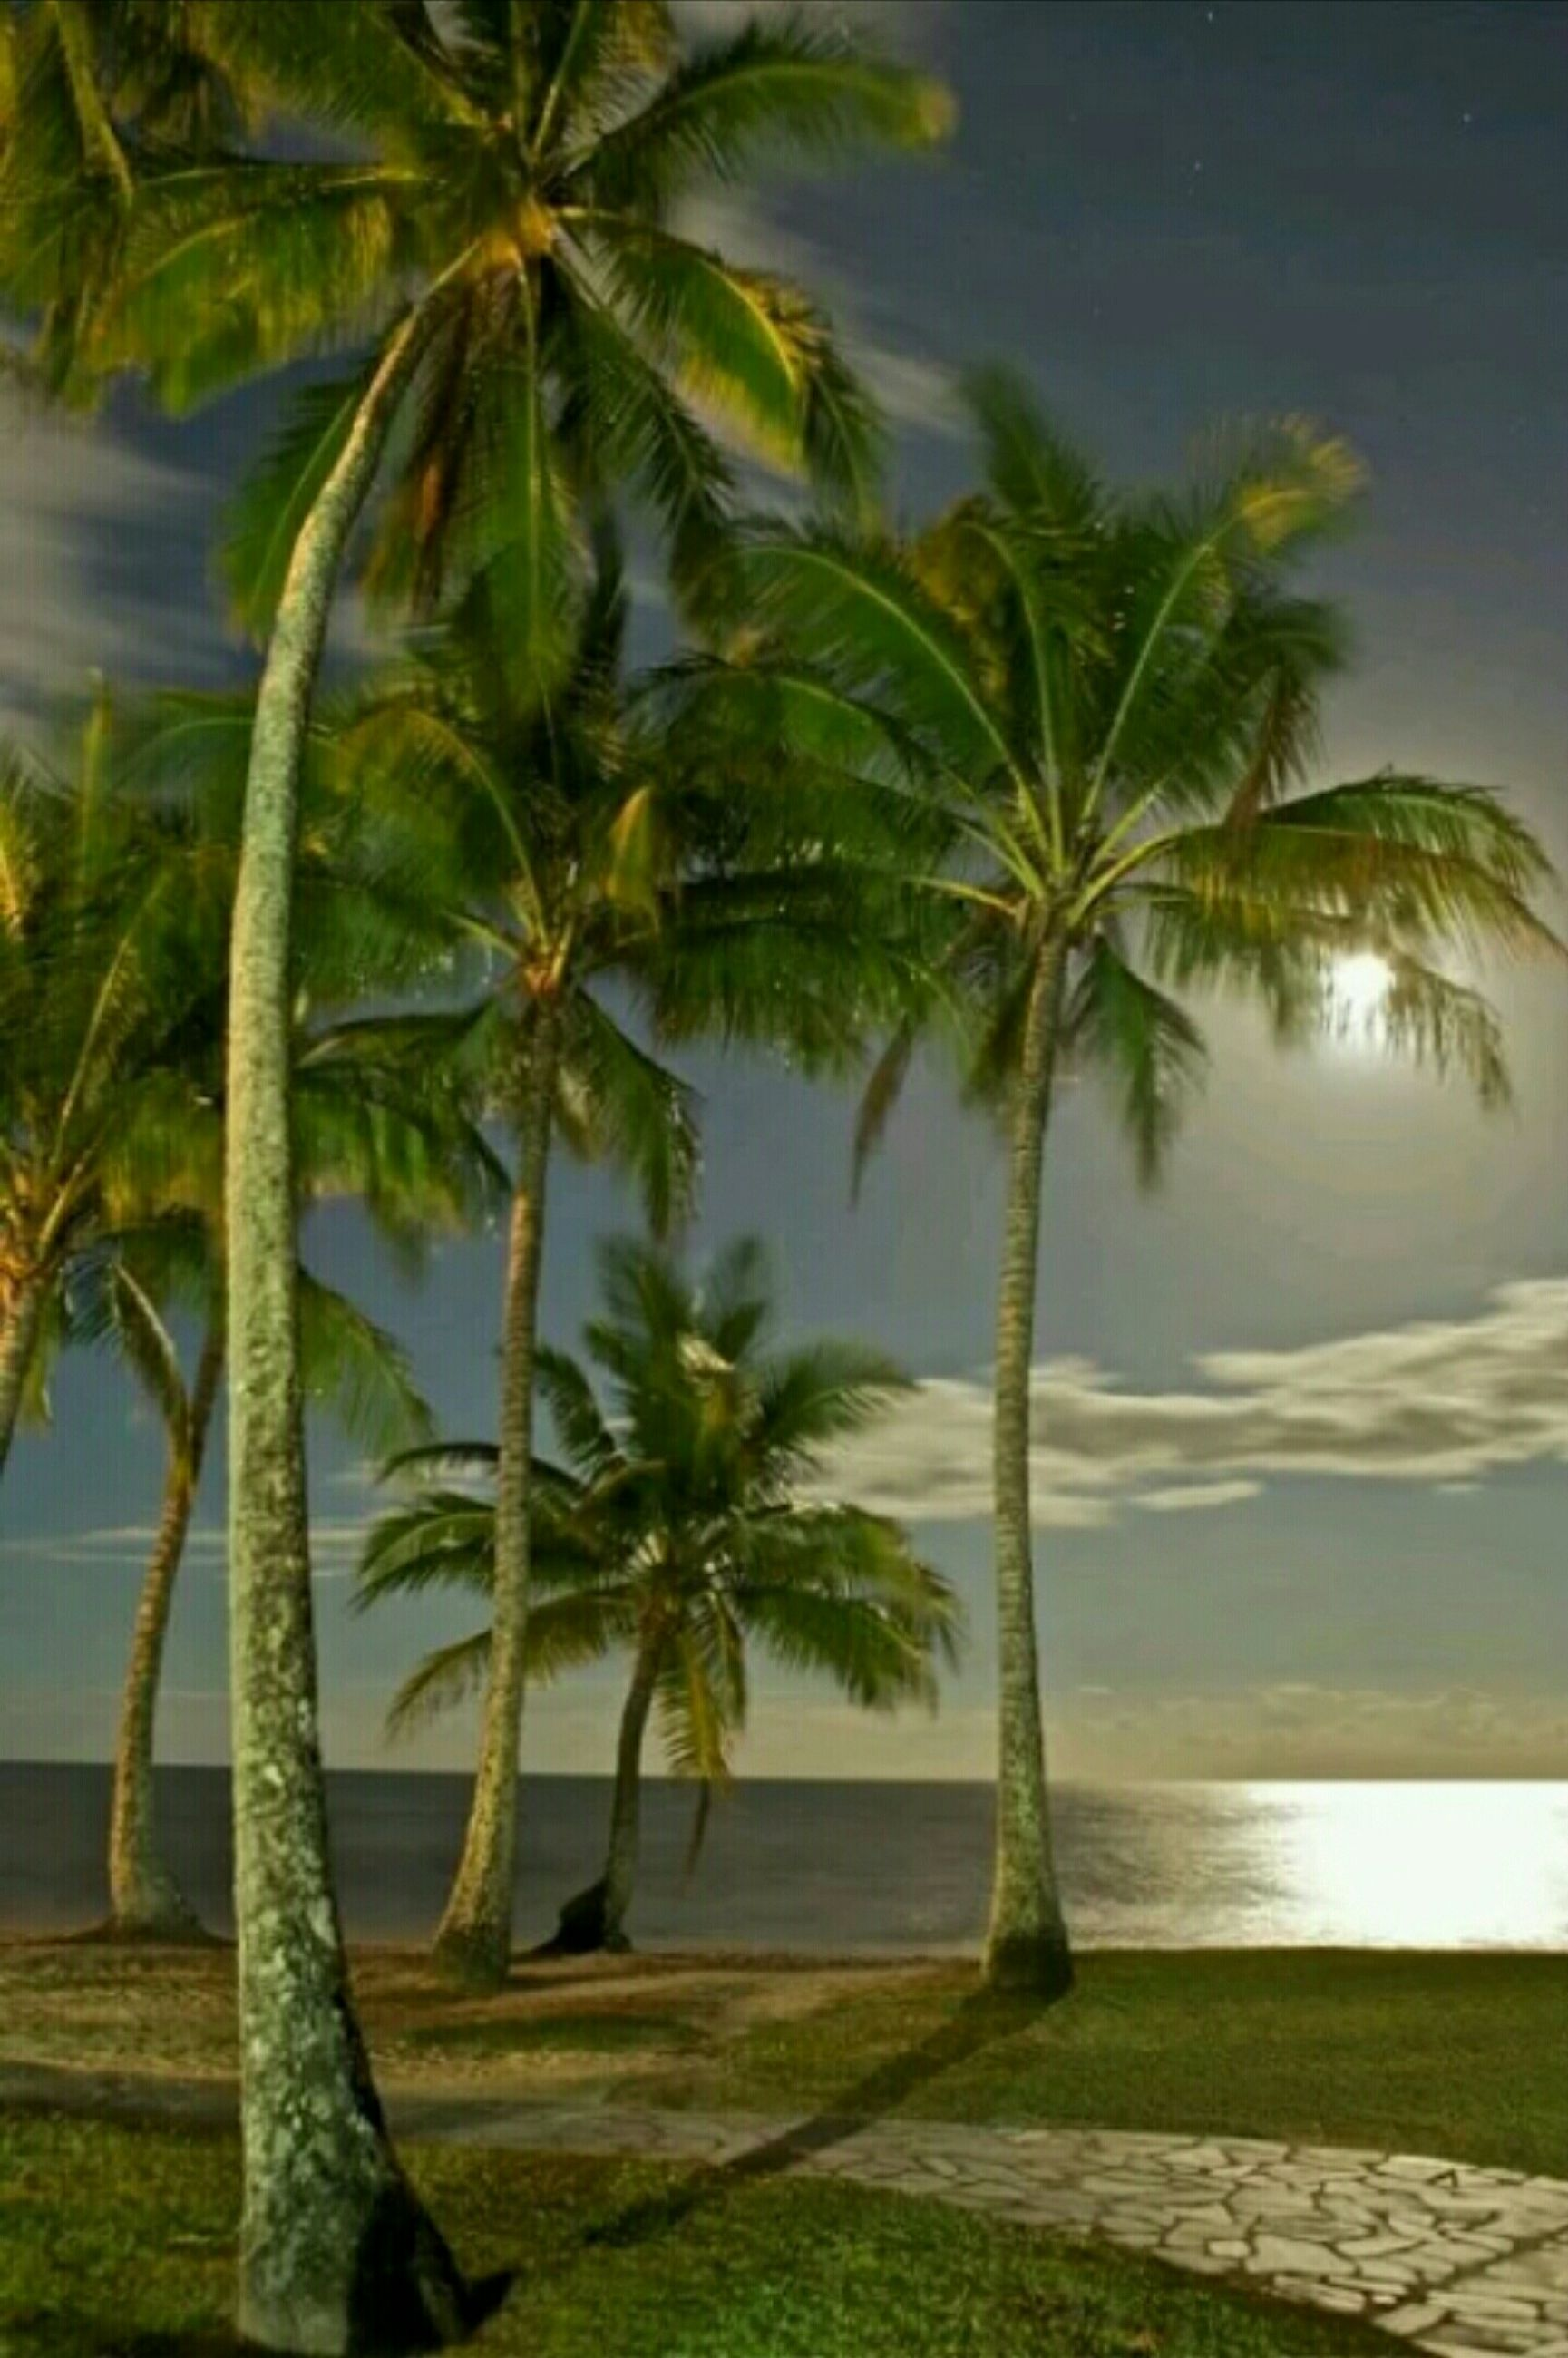 palm tree, tree, growth, tranquility, water, nature, sea, tranquil scene, beauty in nature, tree trunk, scenics, green color, sky, beach, plant, day, idyllic, outdoors, horizon over water, branch